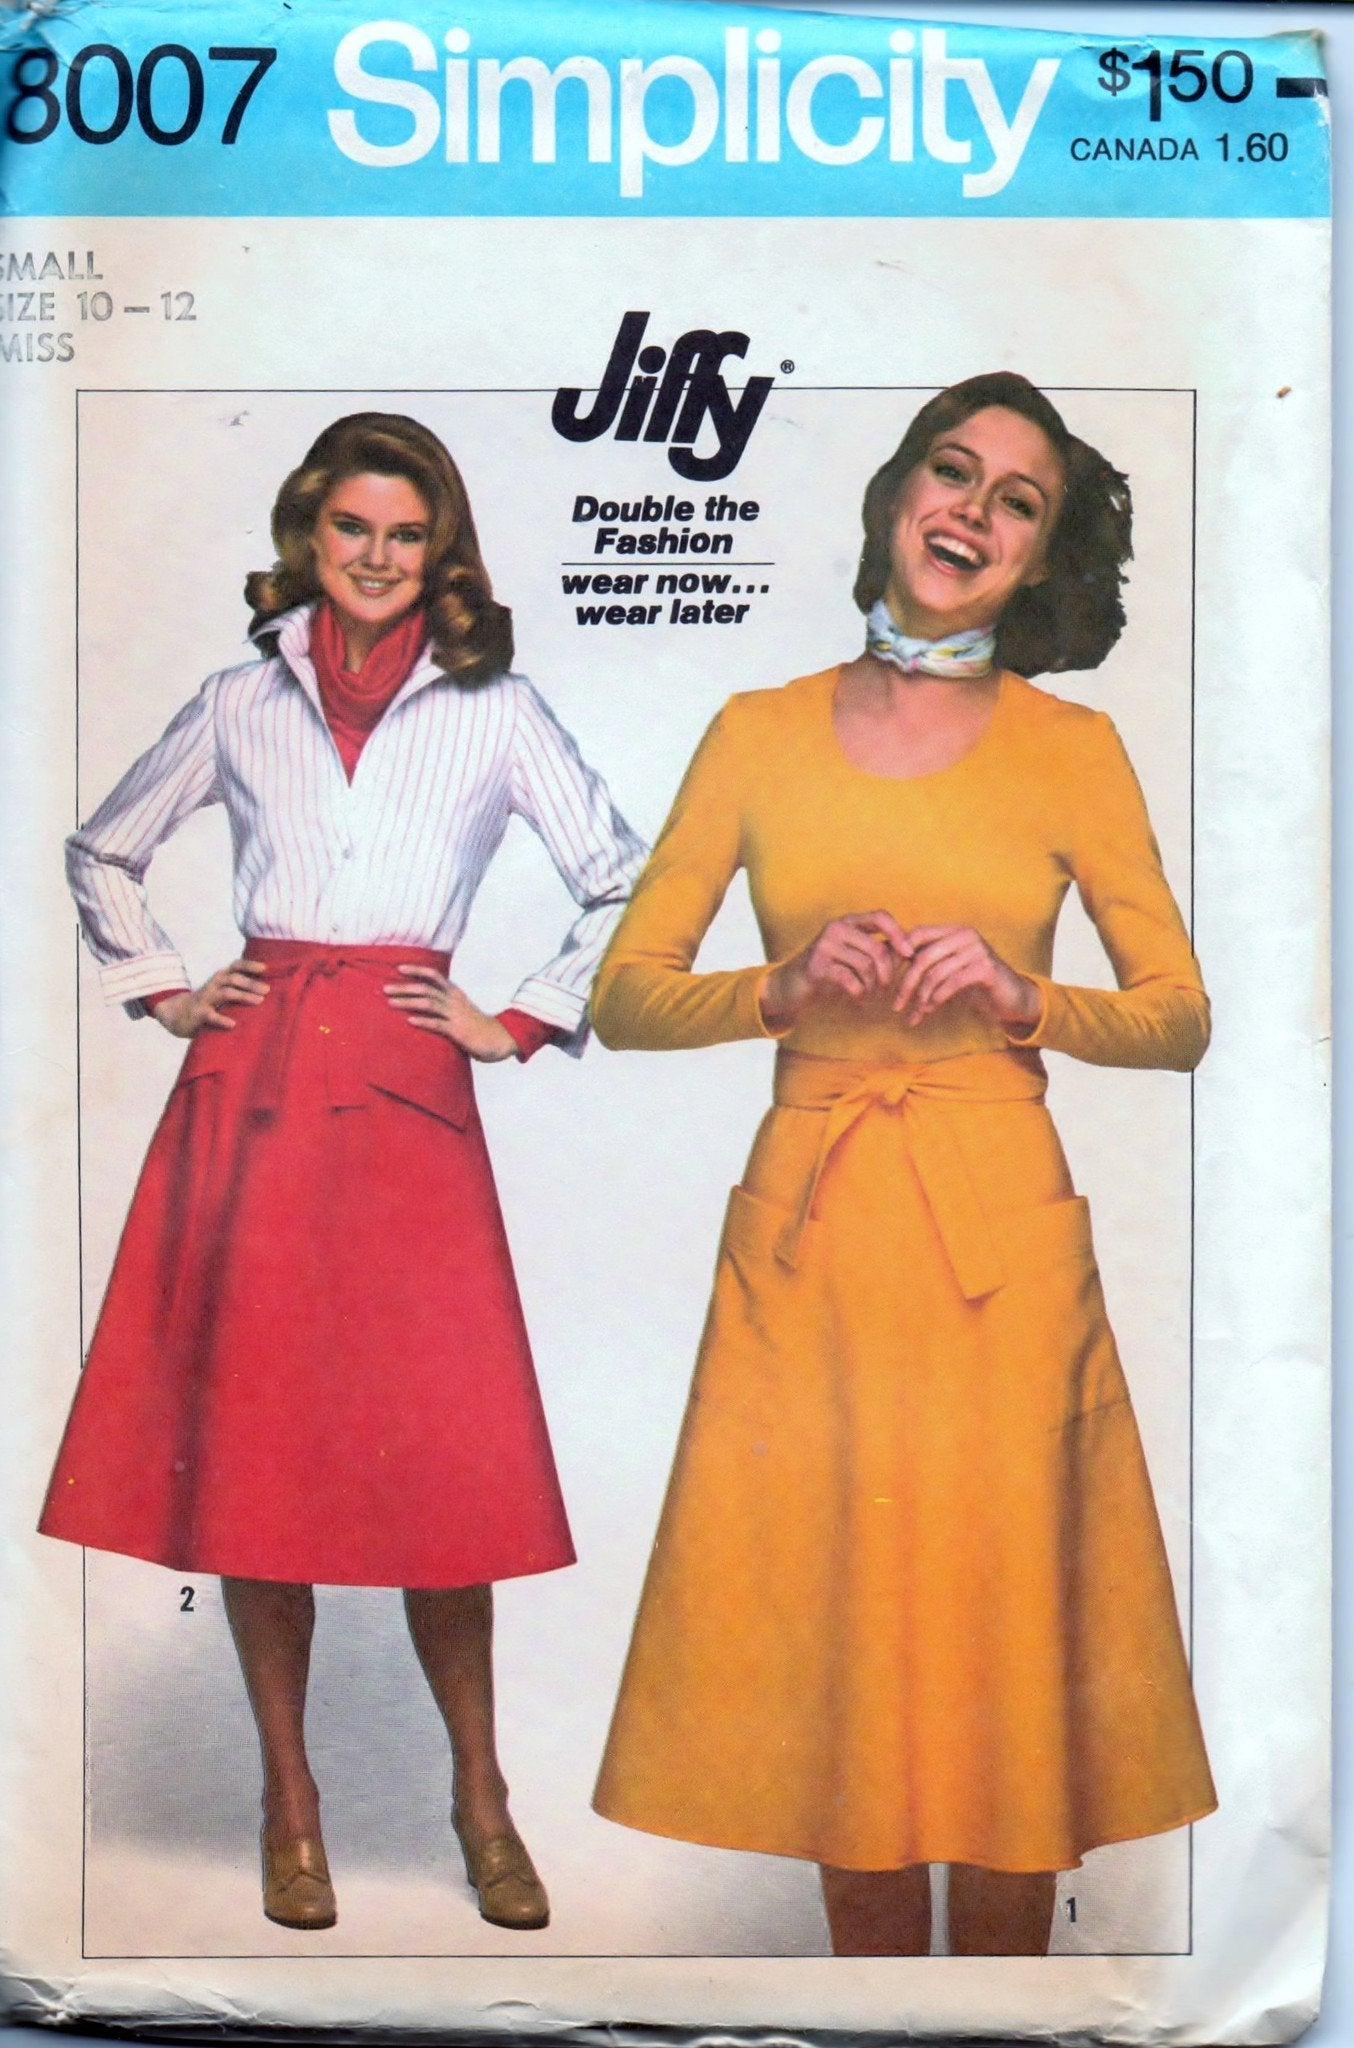 Simplicity 8007 Ladies Wrap Skirt Jiffy Vintage 1970's Sewing Pattern - VintageStitching - Vintage Sewing Patterns